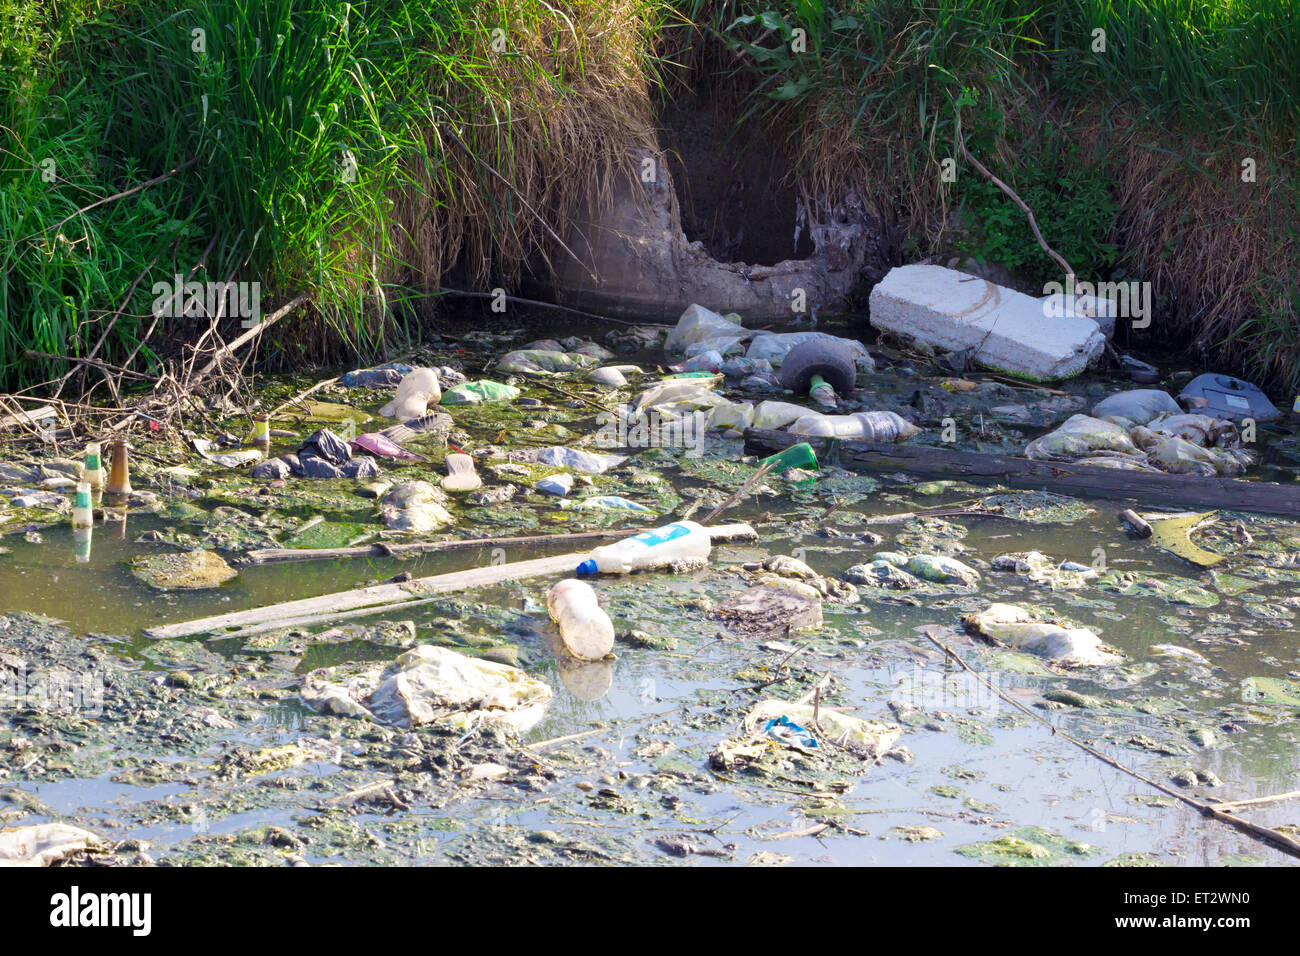 Garbage floating on the river - Stock Image